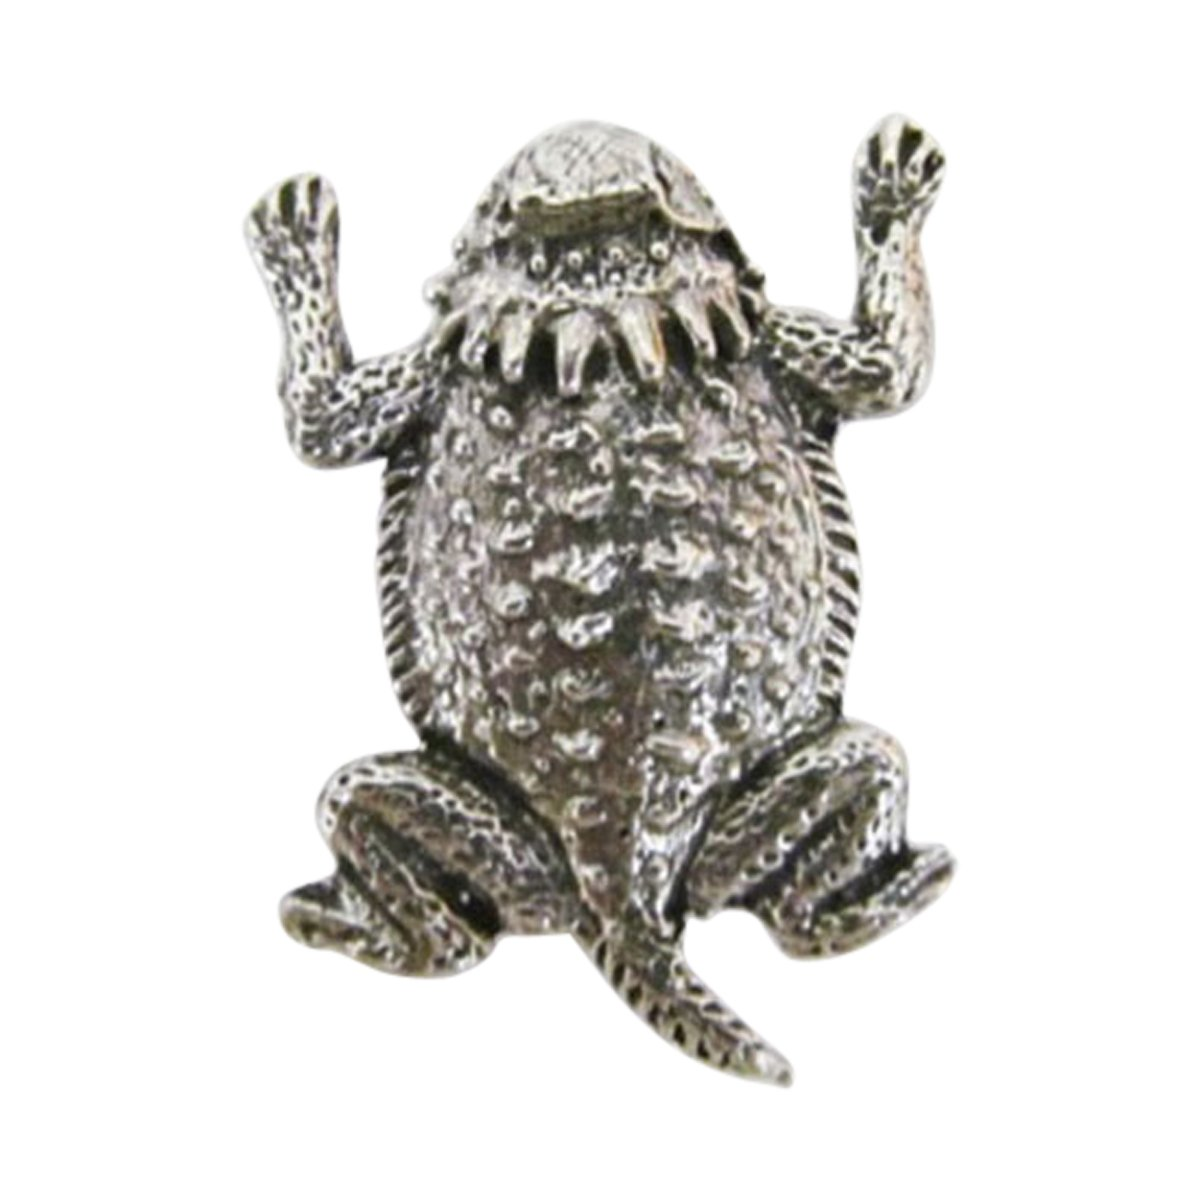 Creative Pewter Designs, Pewter Horny Toad / Short-Horned Lizard Lapel Pin Brooch, Antiqued Finish, A061